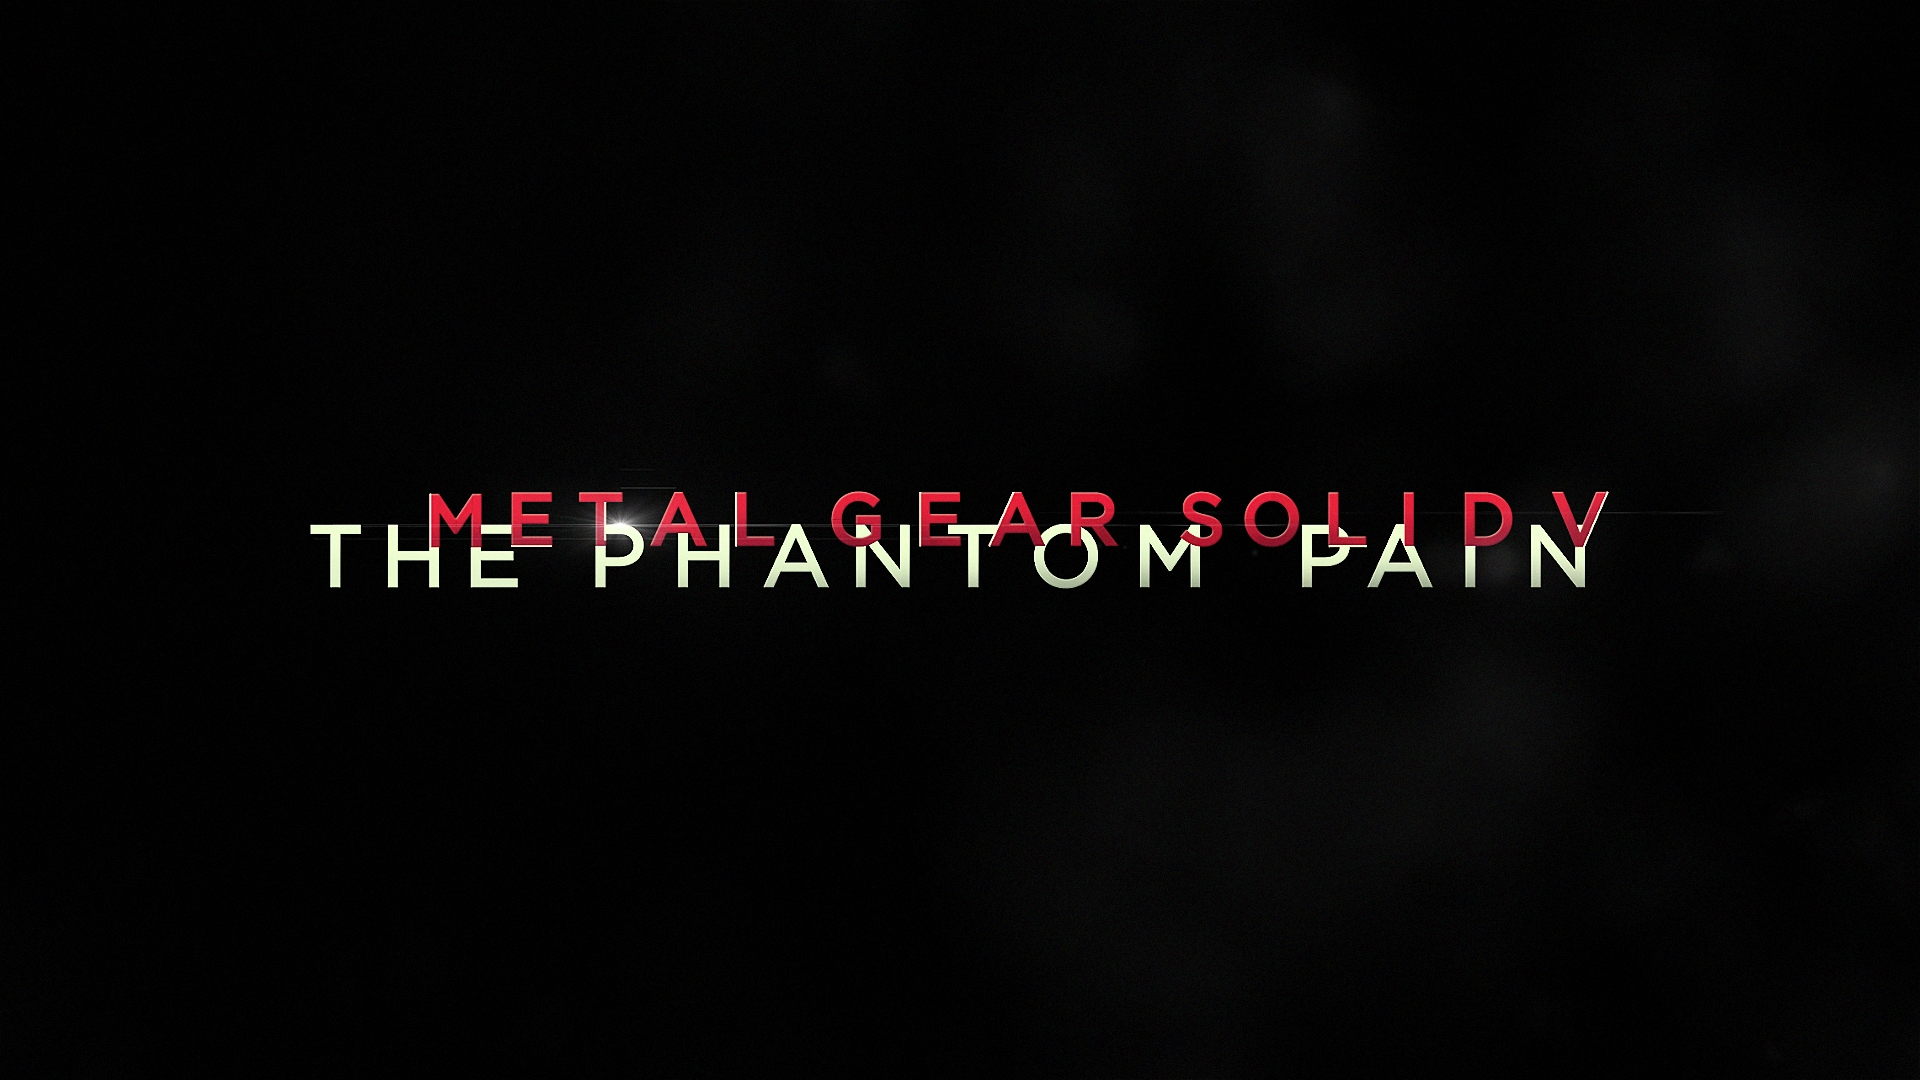 Metal Gear Solid V's prologue shows that The Phantom Pain will go